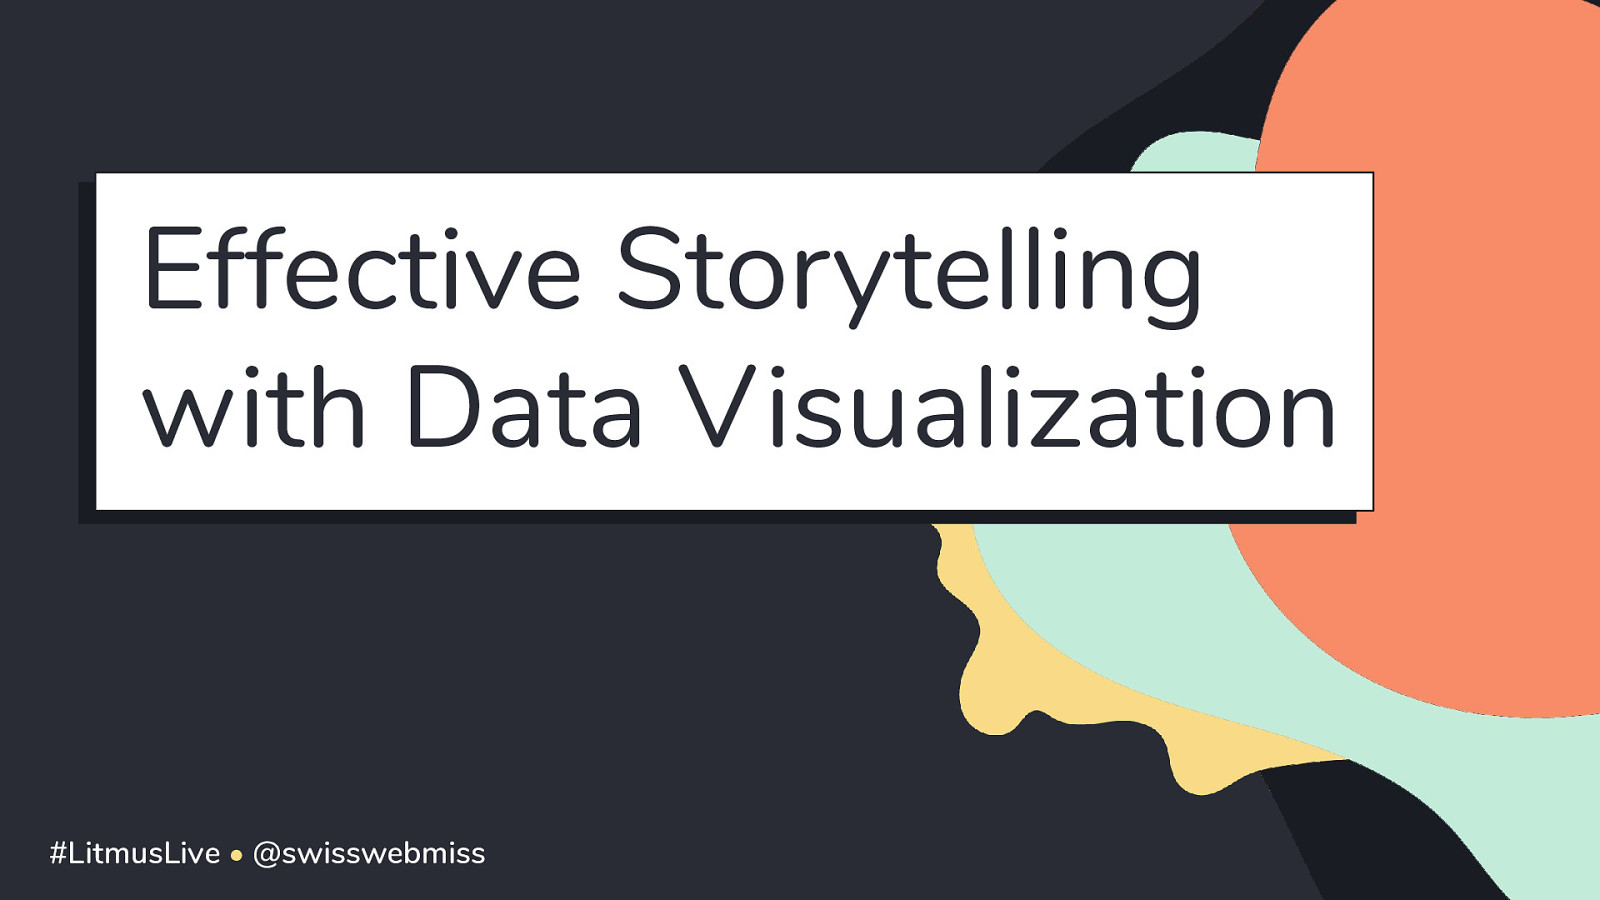 Effective Storytelling with Data Visualization